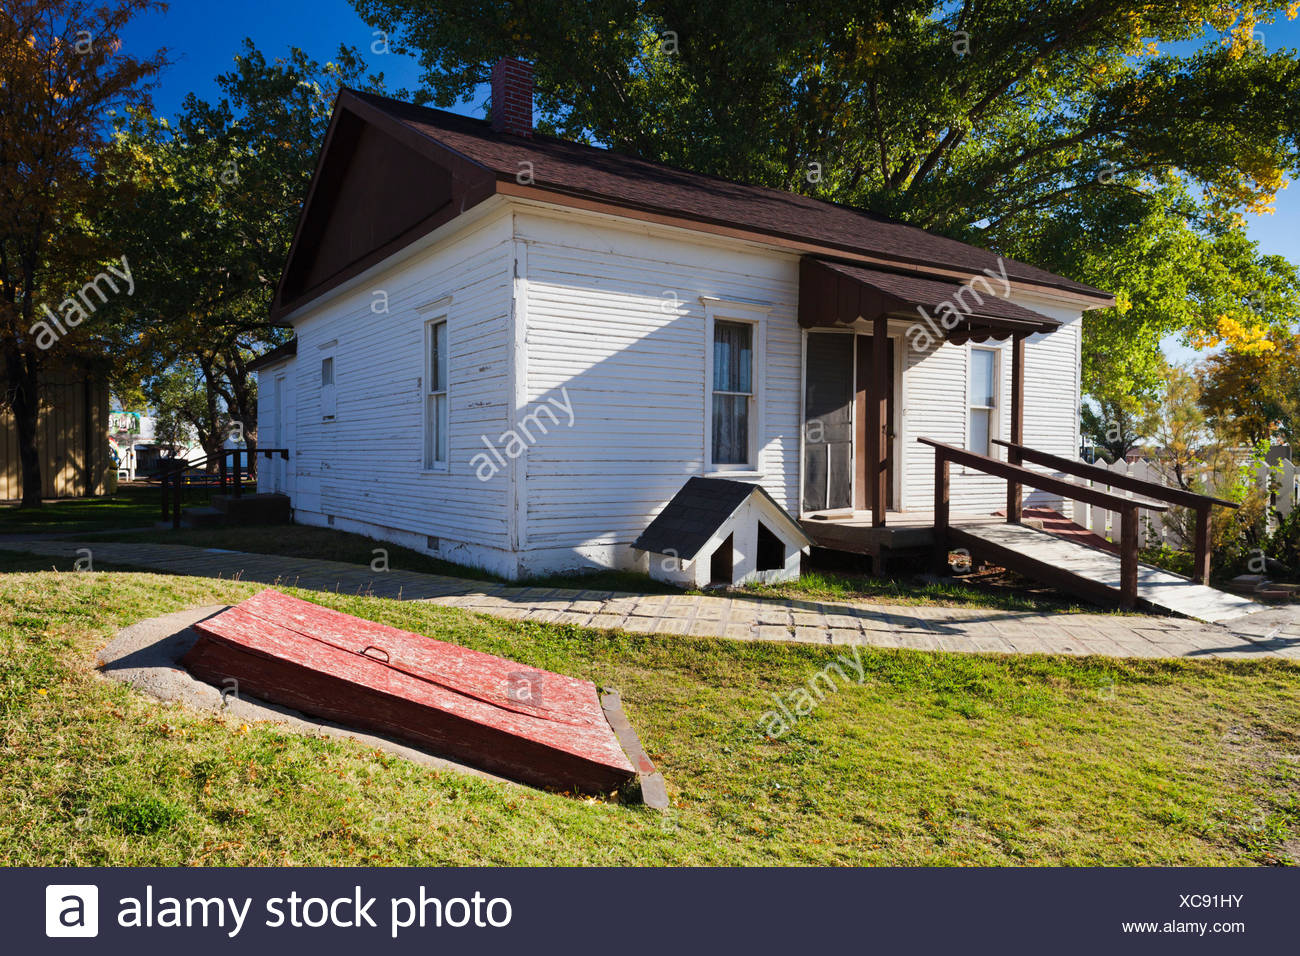 USA, Kansas, Liberal, Dorothy's House, replica of the house from the film Wizard of Oz - Stock Image